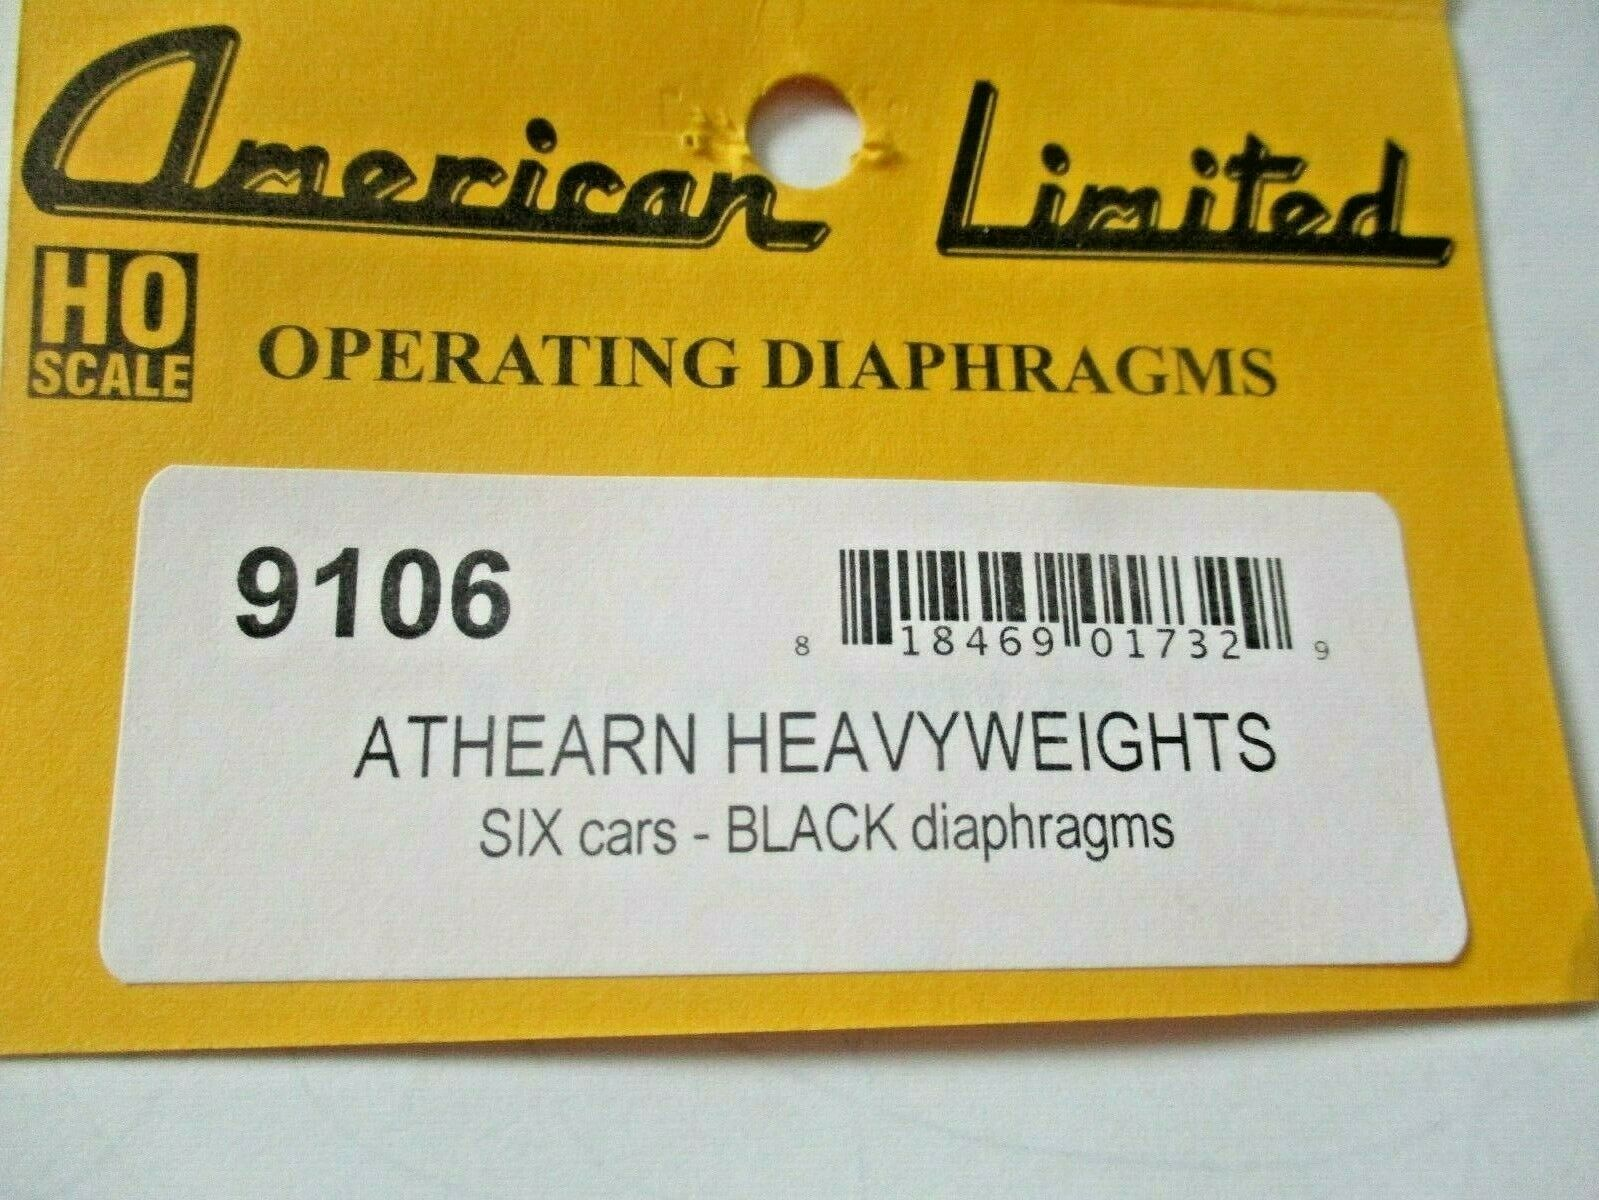 American Limited 9106 Heavyweight Black Diaphragms for 6 Cars Athearn HO-Scale